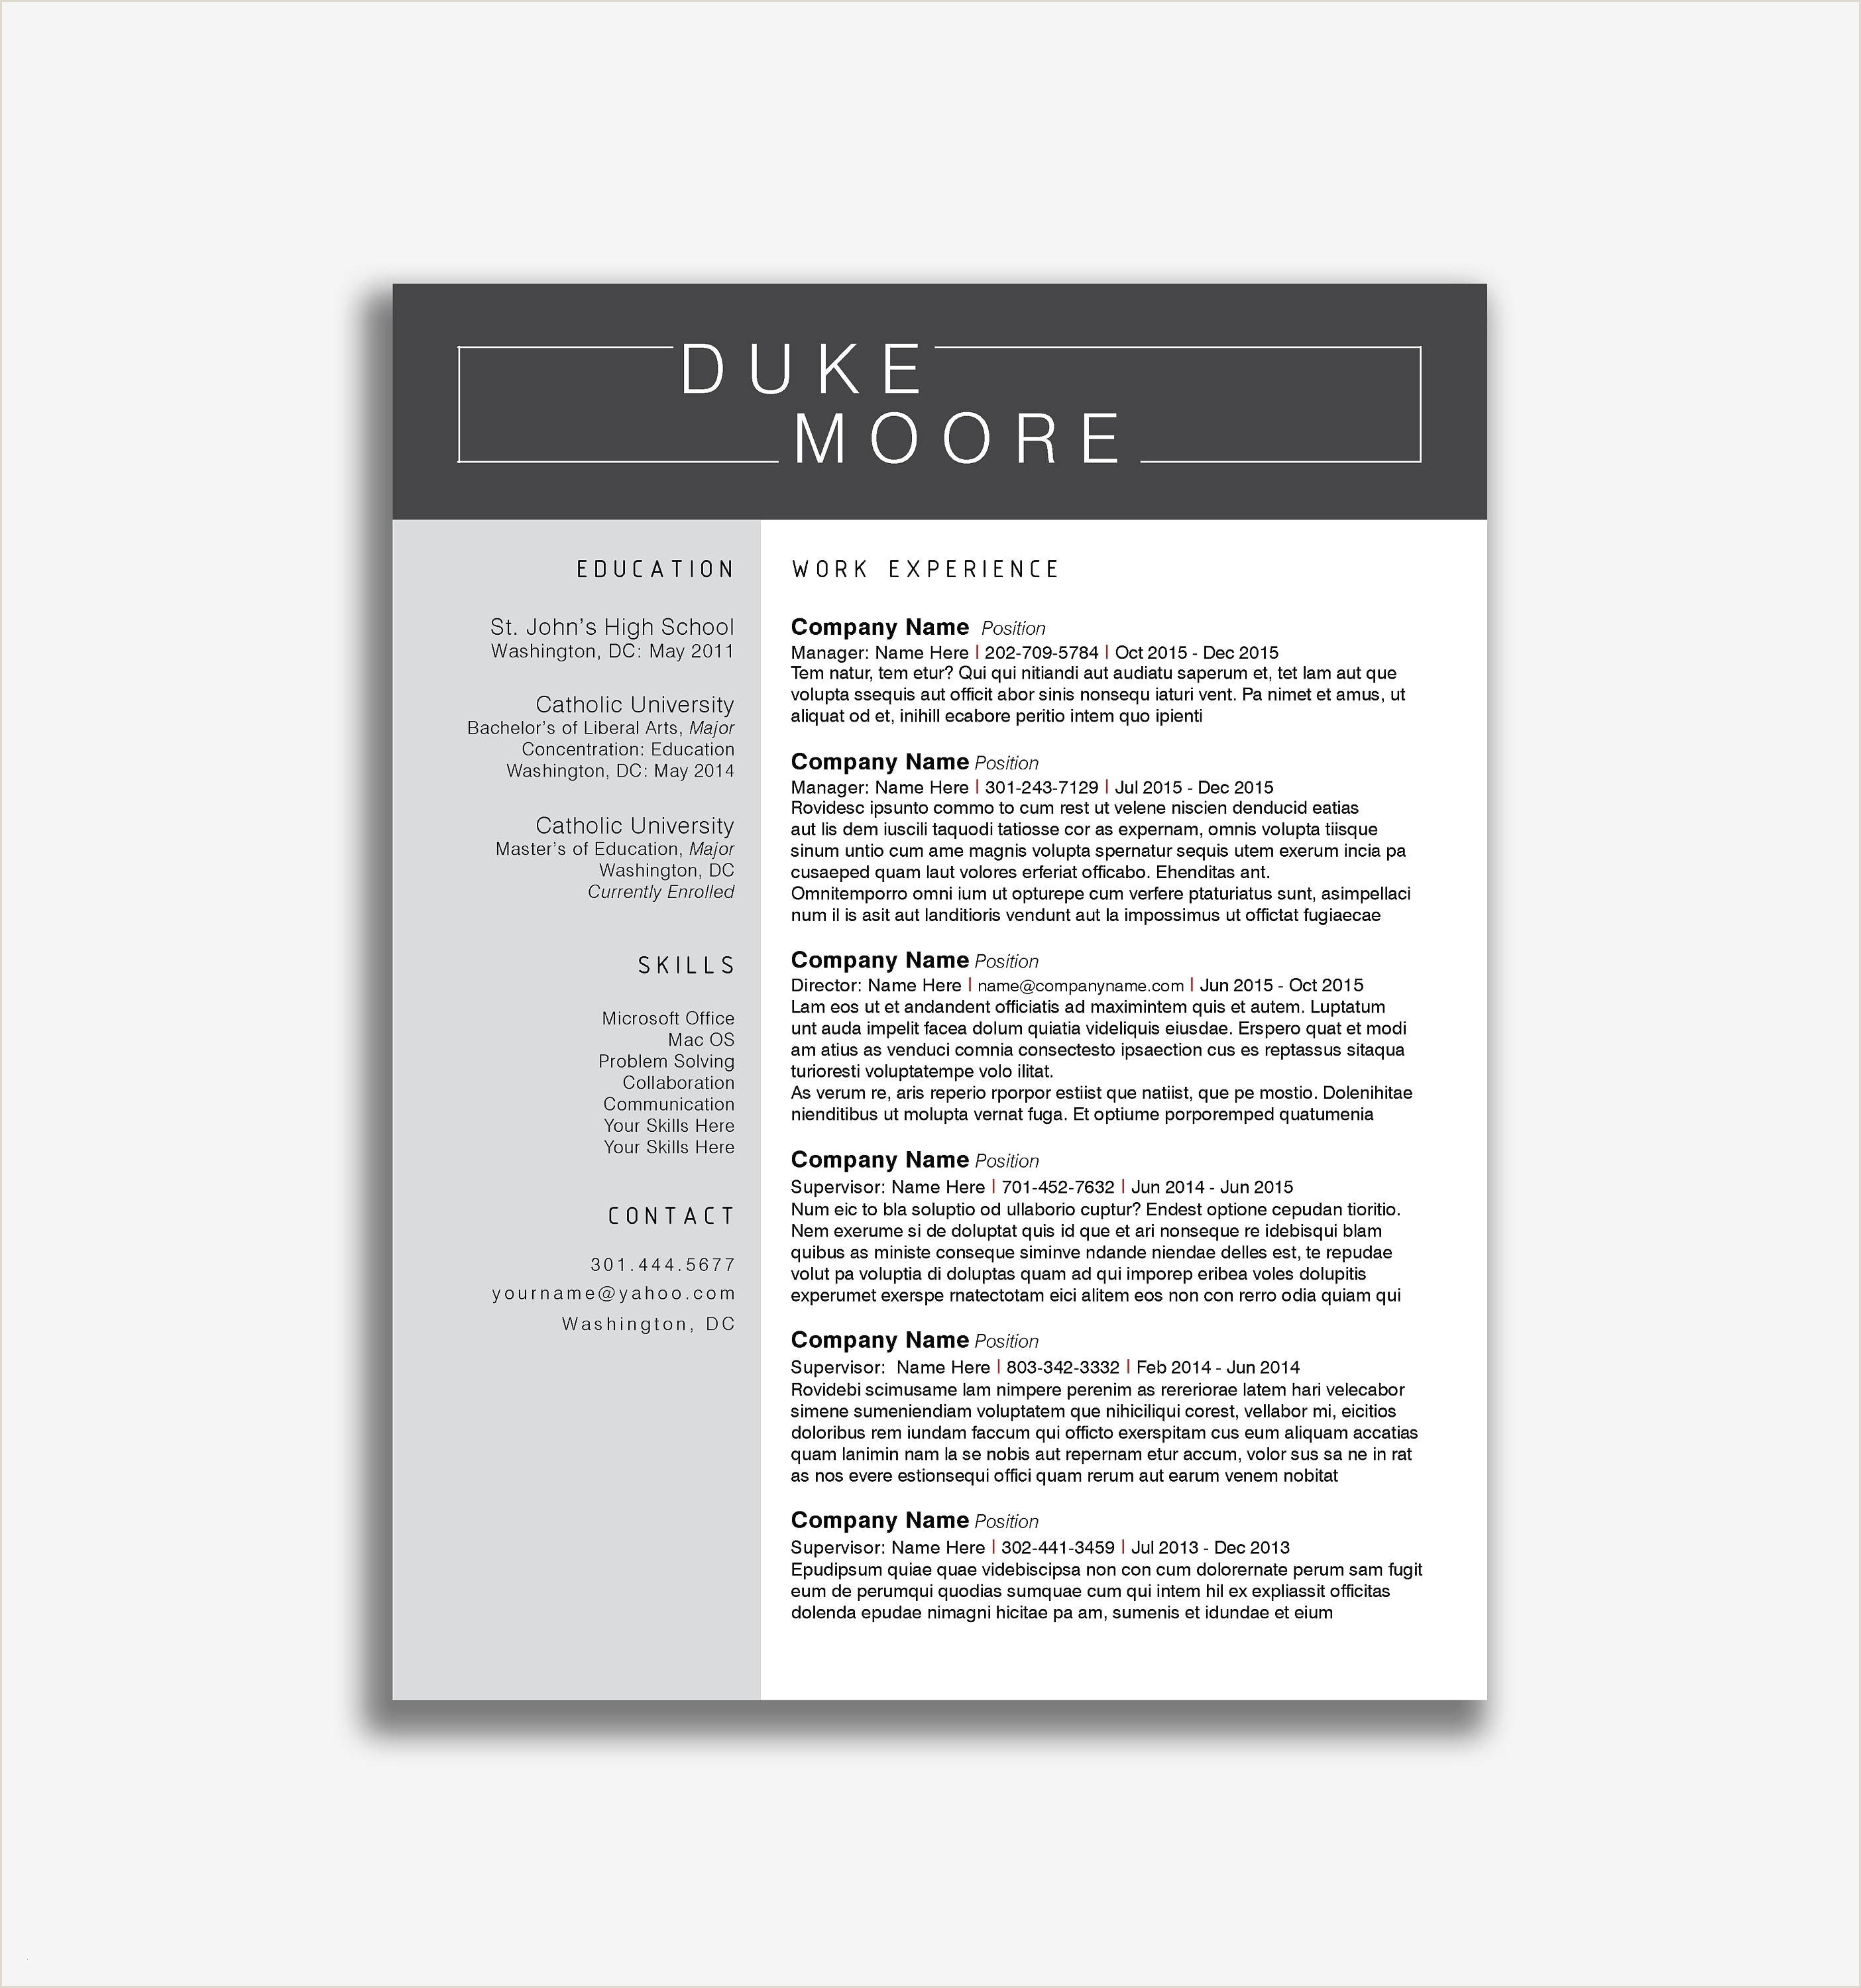 Standard Cv format for Experienced Sample Resume for Teachers without Experience Elegant Cover